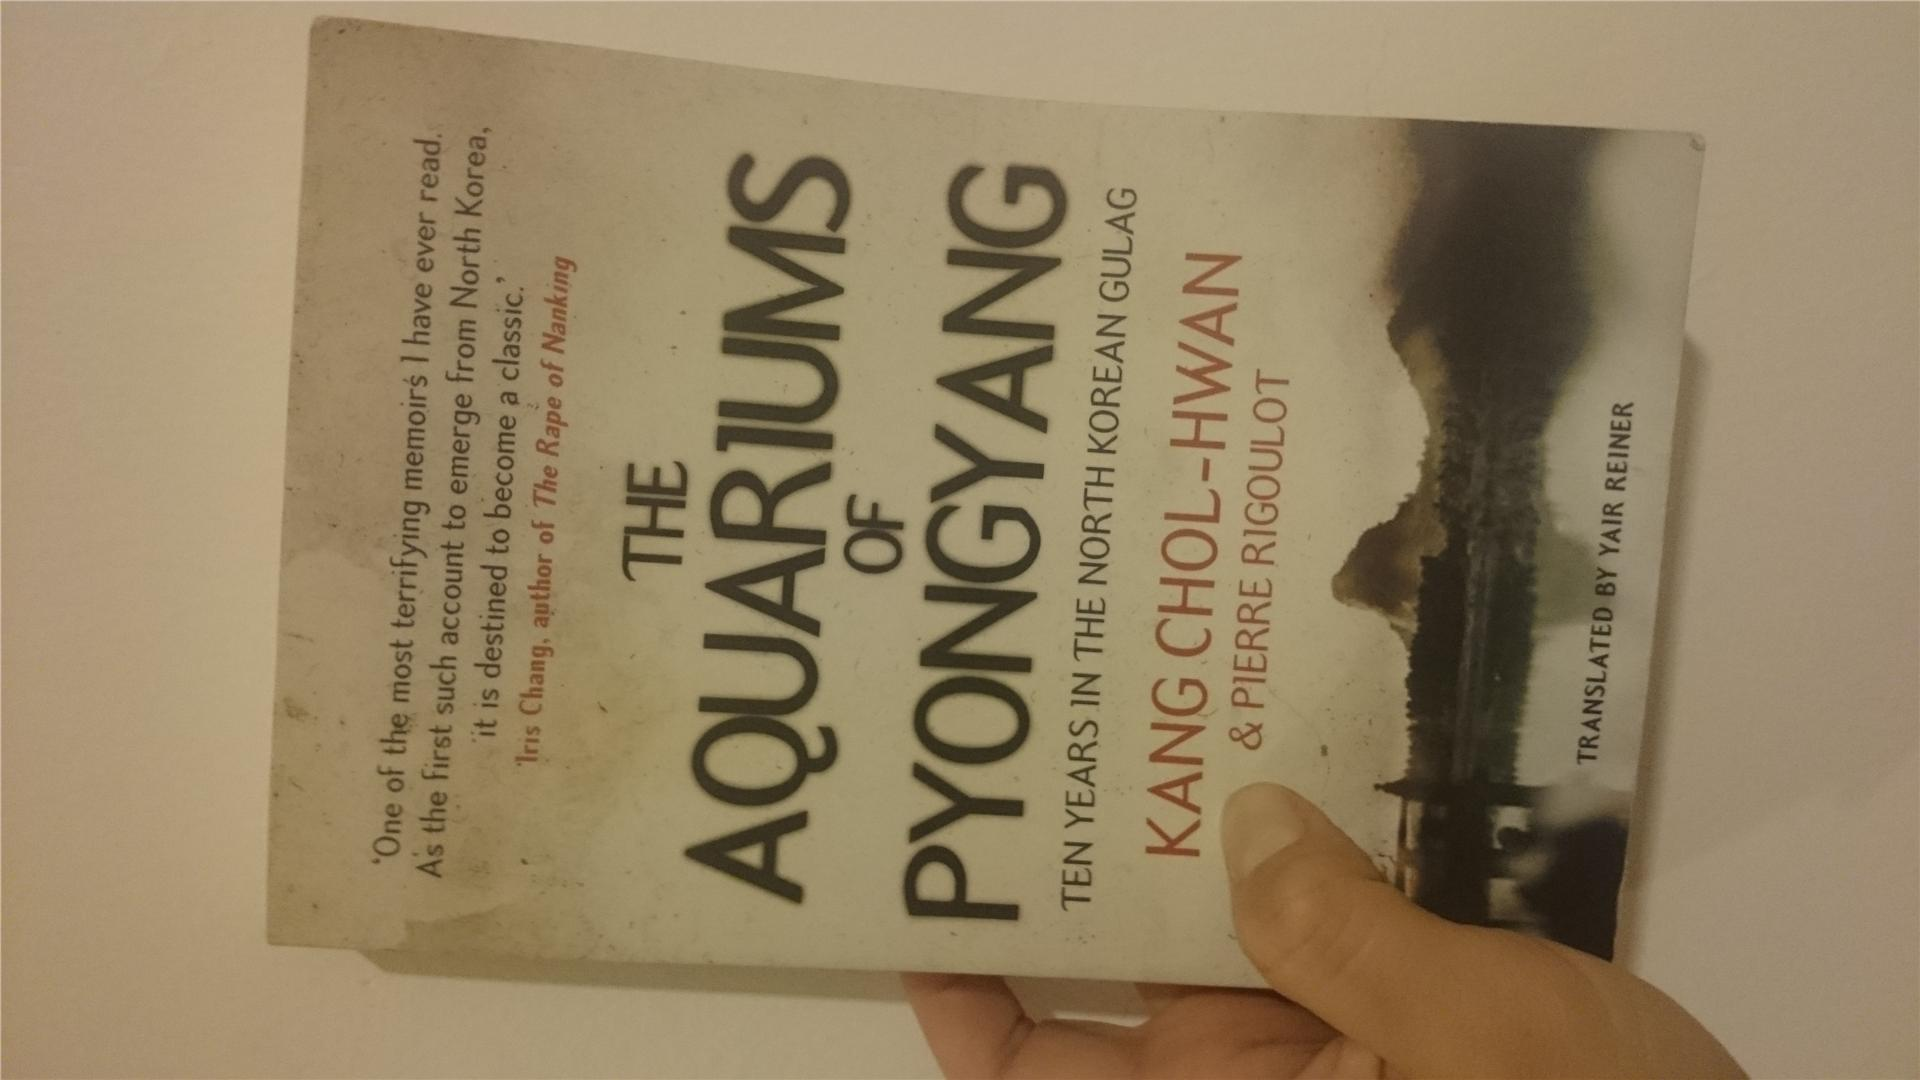 the aquariums of pyongyang The aquariums of pyongyang review on novels and nonfiction  the  aquariums of pyonyang is the story of kang chol-hwan, who survived.